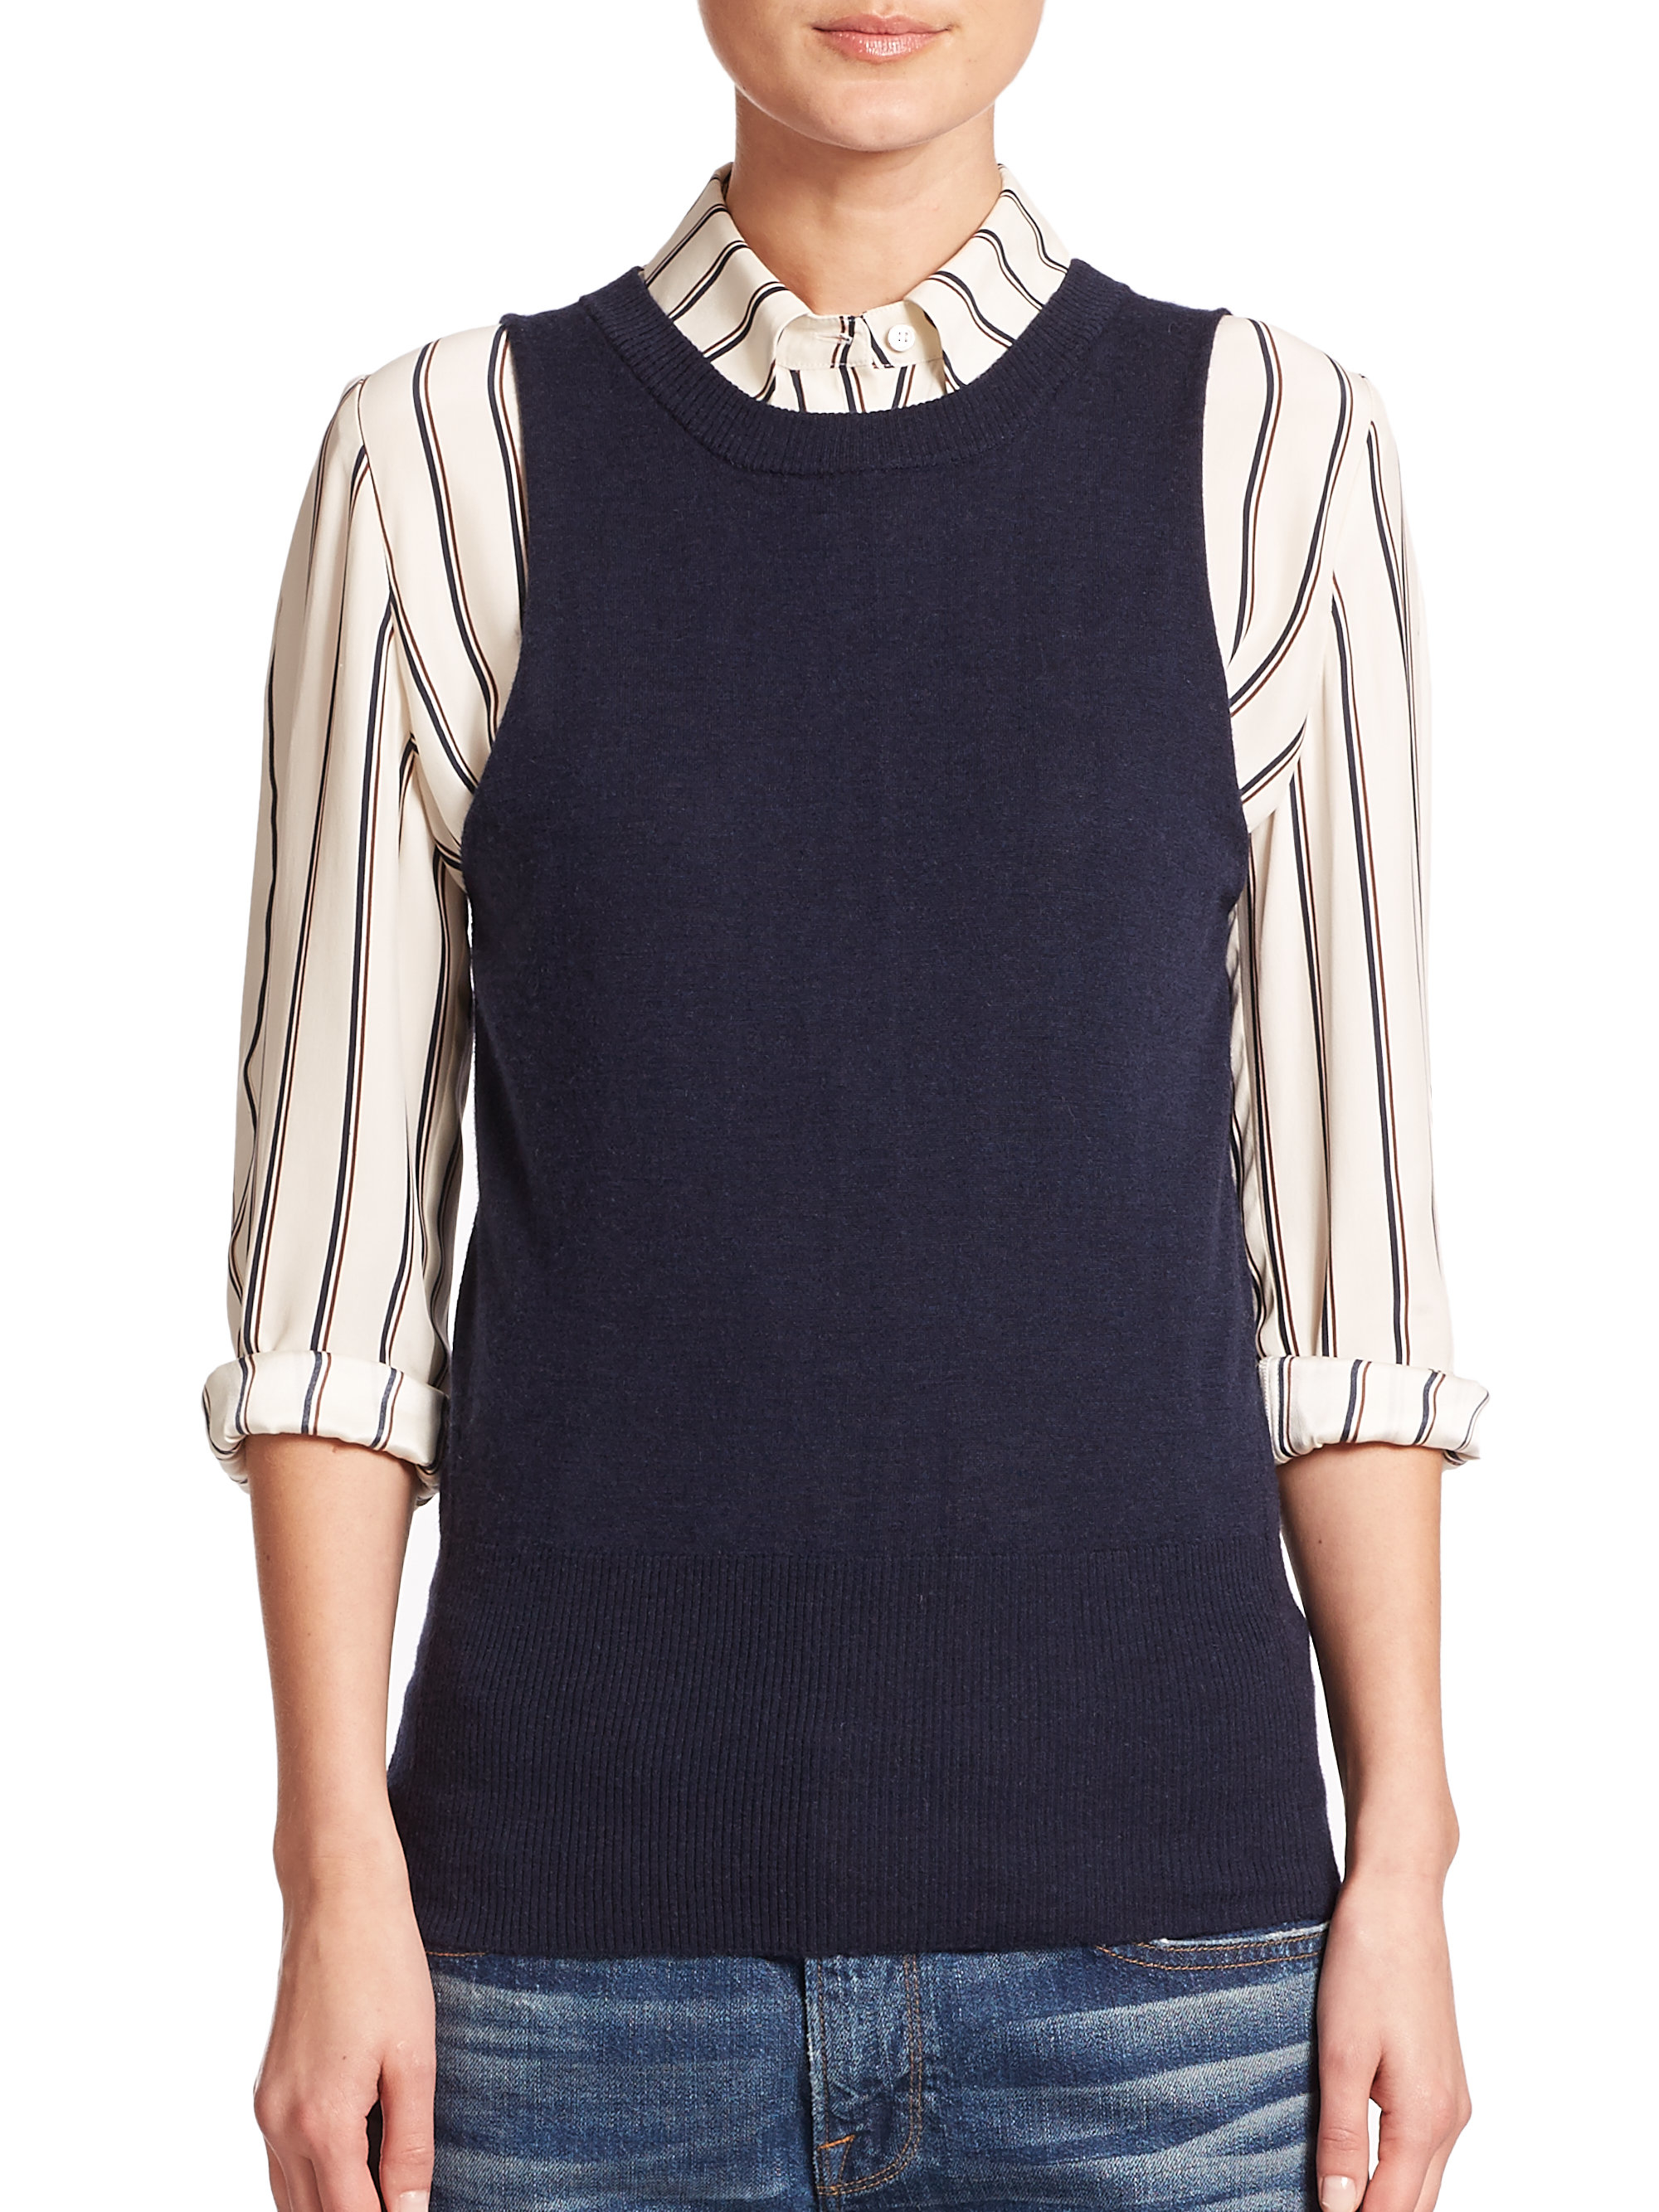 Frame Wool & Cashmere Sleeveless Sweater in Blue | Lyst